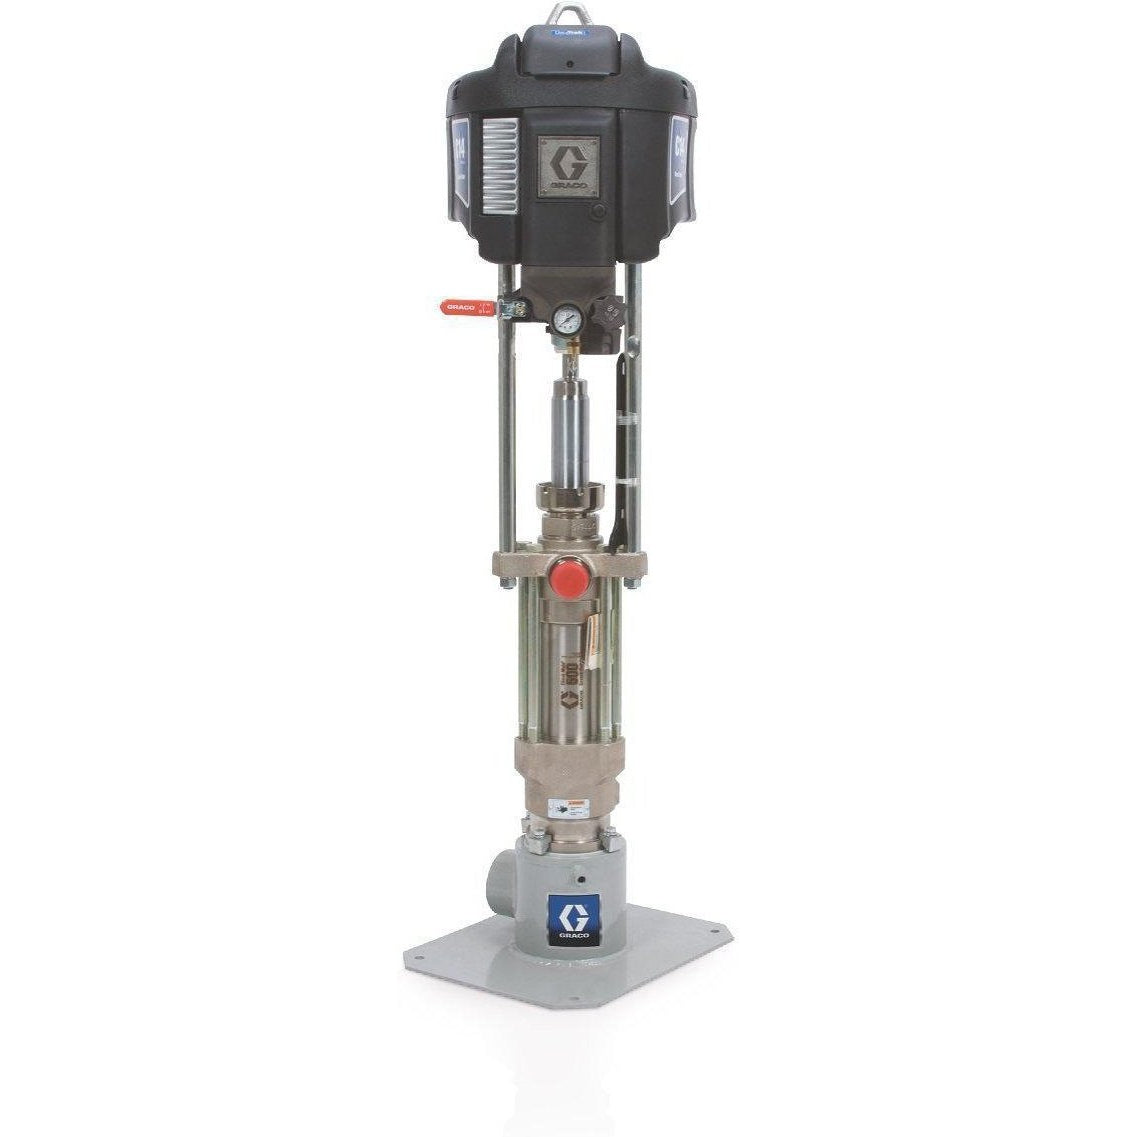 Graco 247977 Nxt™ Check-Mateâ® 55:1 Grease Pump Package With Datatrak - Floor Standing - Fireball Equipment Ltd.